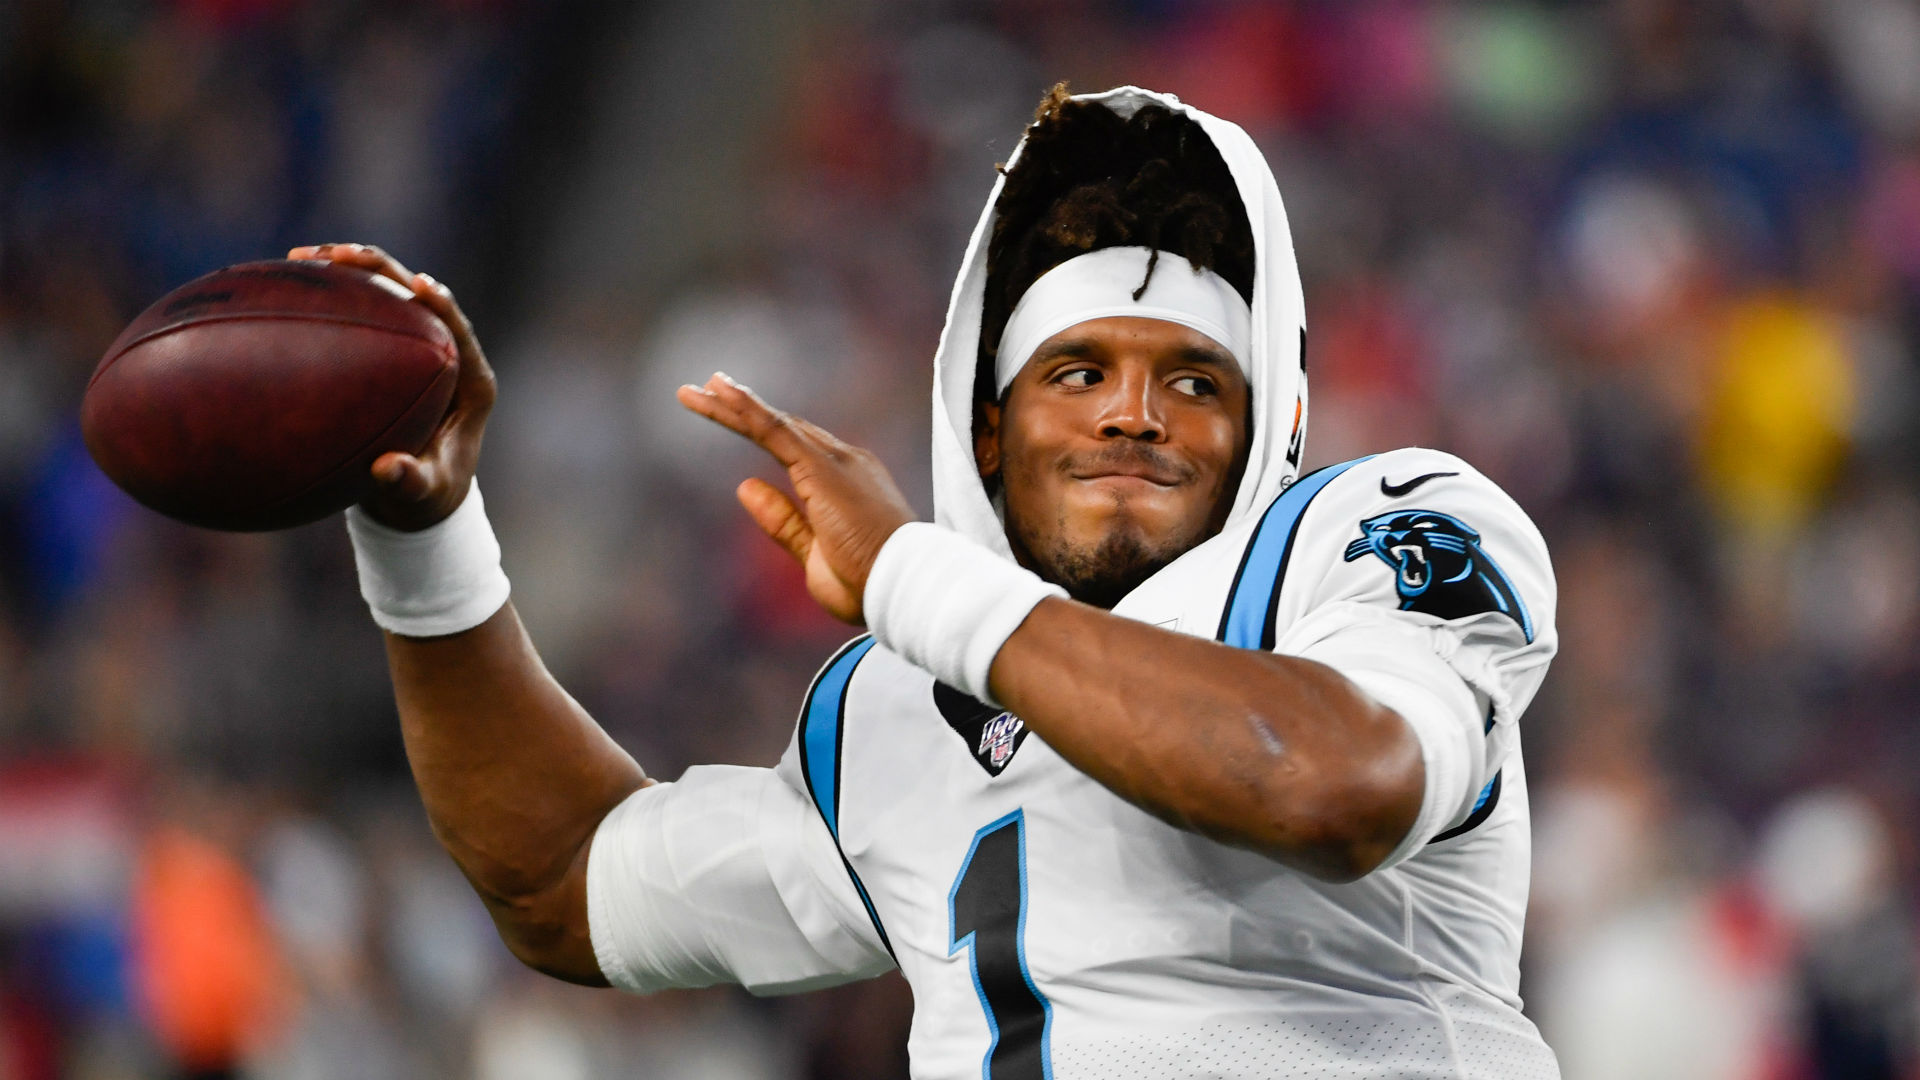 Cam Newton suffered a foot injury during Thursday's preseason match, but the Carolina Panthers are optimistic on the quarterback's fitness.